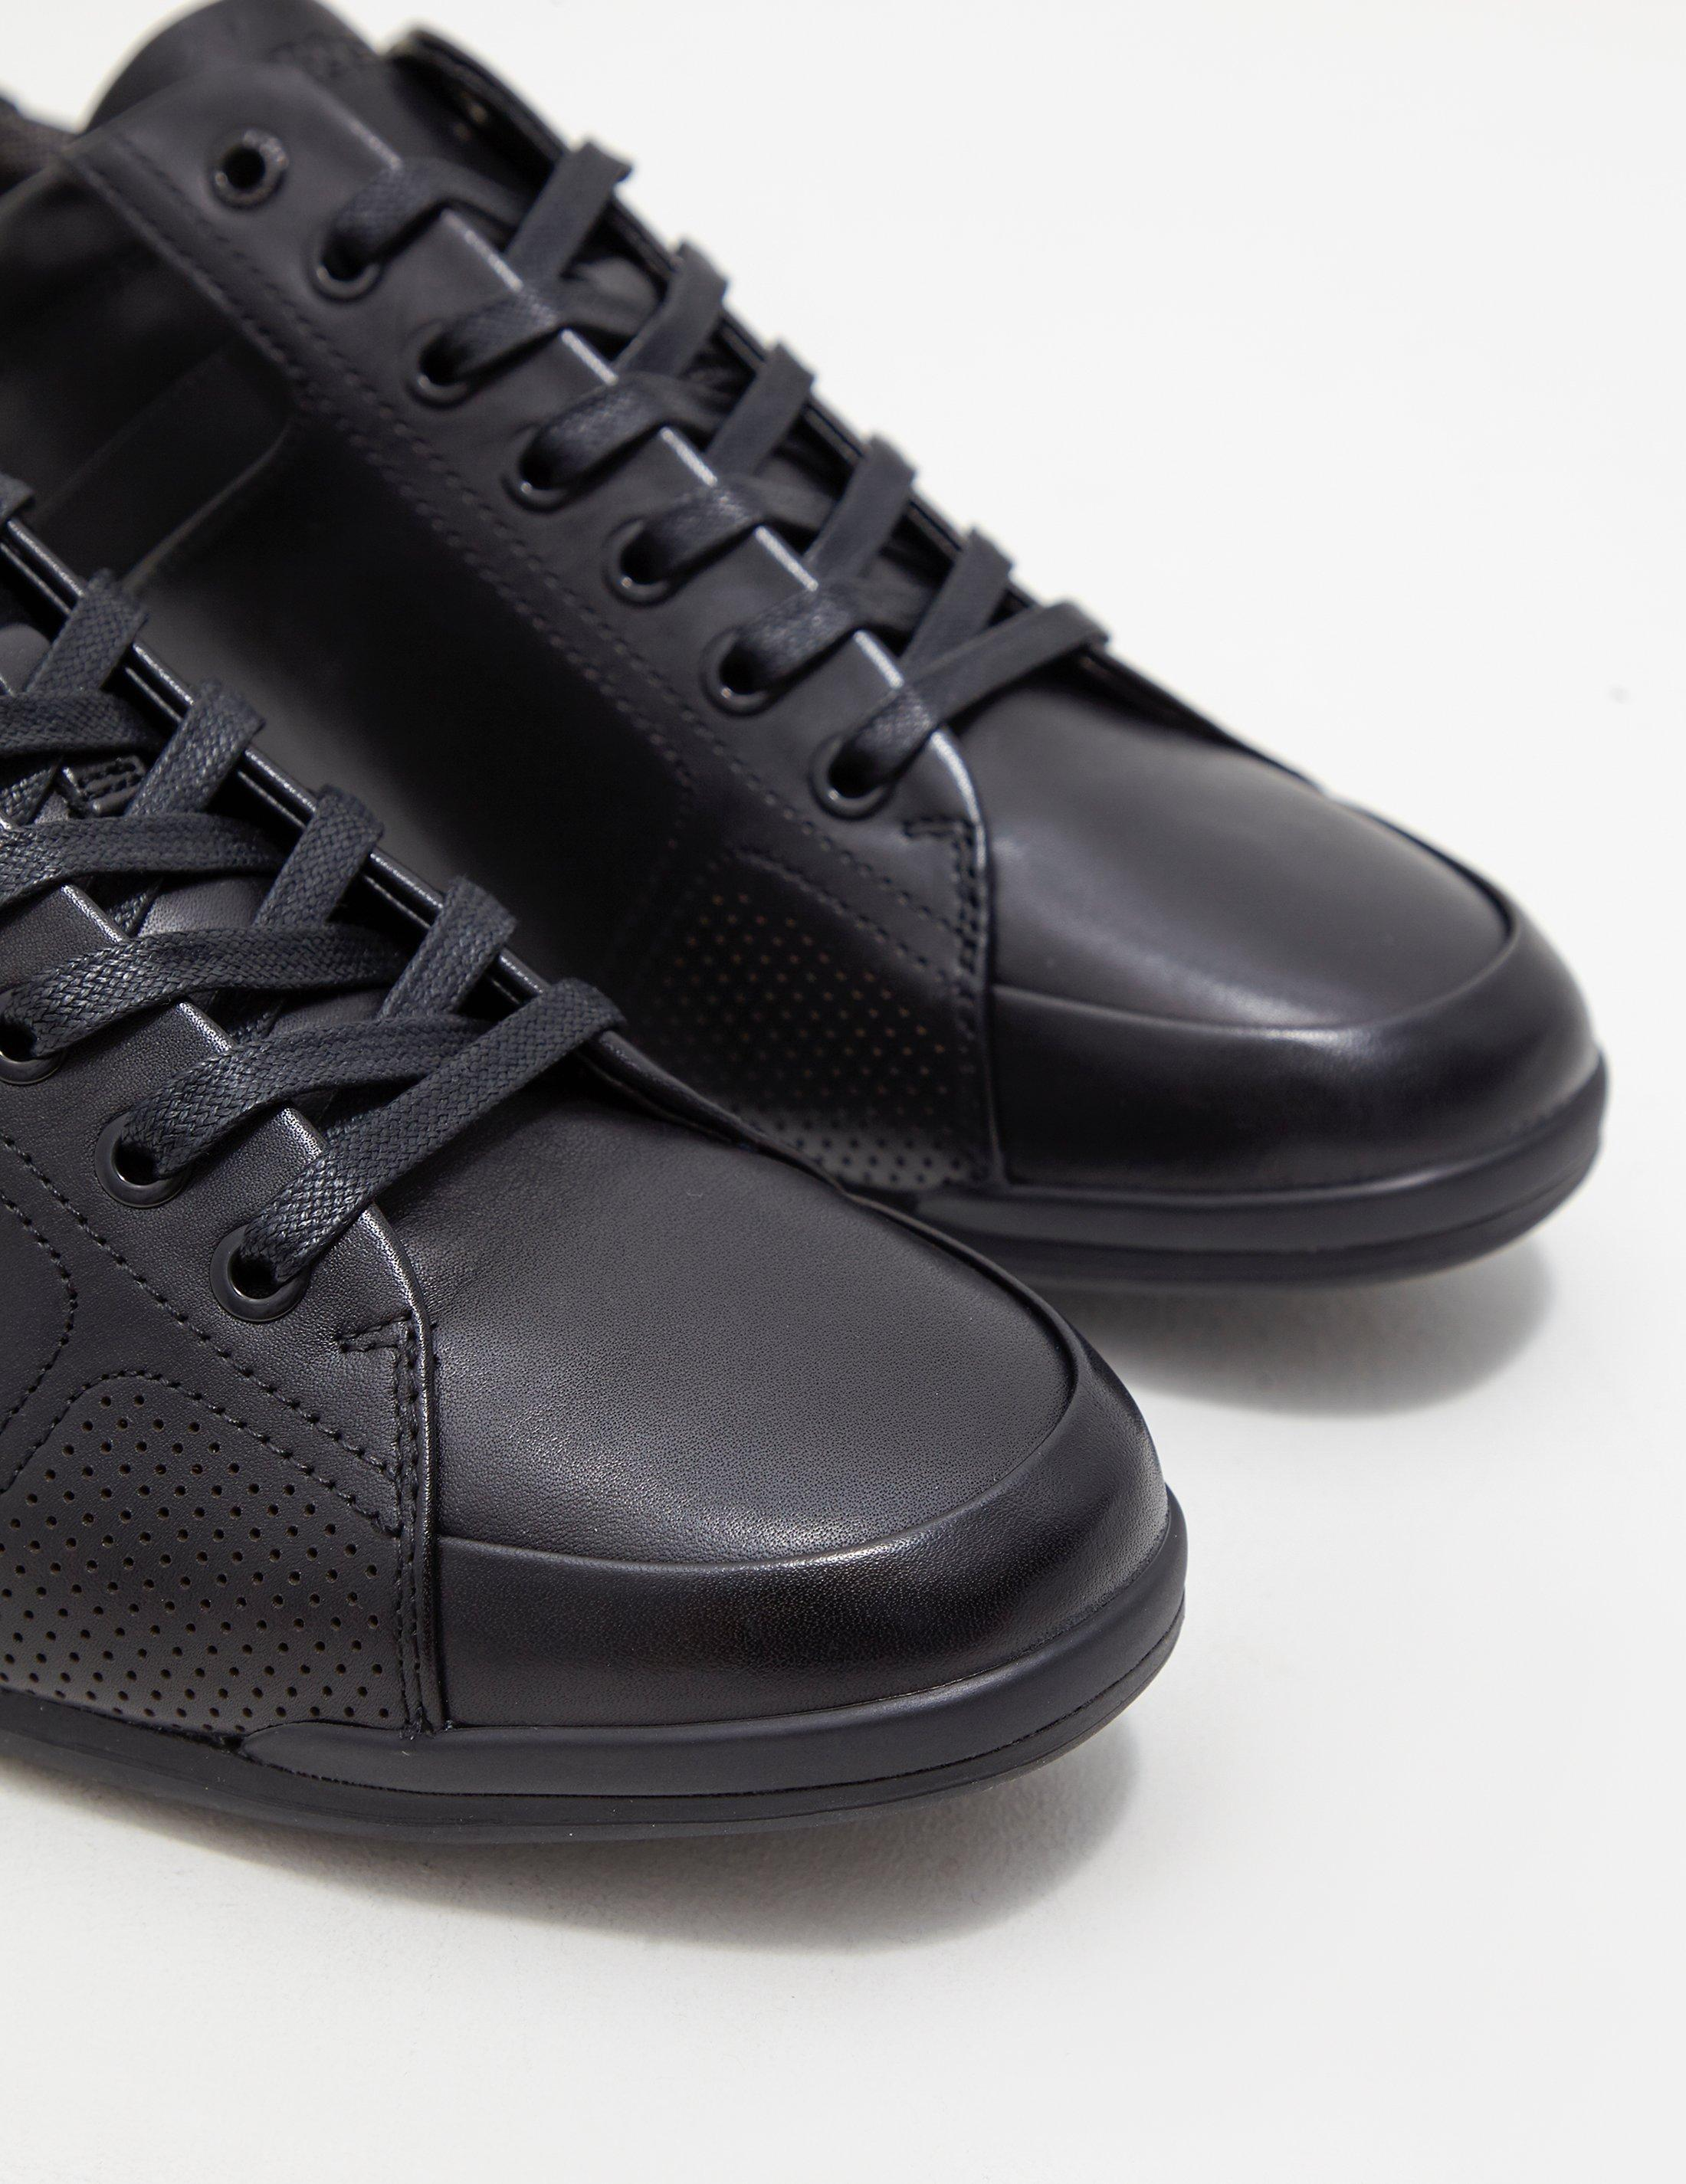 a030cc1523 Lyst Boss Mens Saturn Leather Black In Black For Men Save 0  4854368932038824 · Boss Mens Saturn Leather Black · Boss Saturn Low Lux 4  Sneakers ...